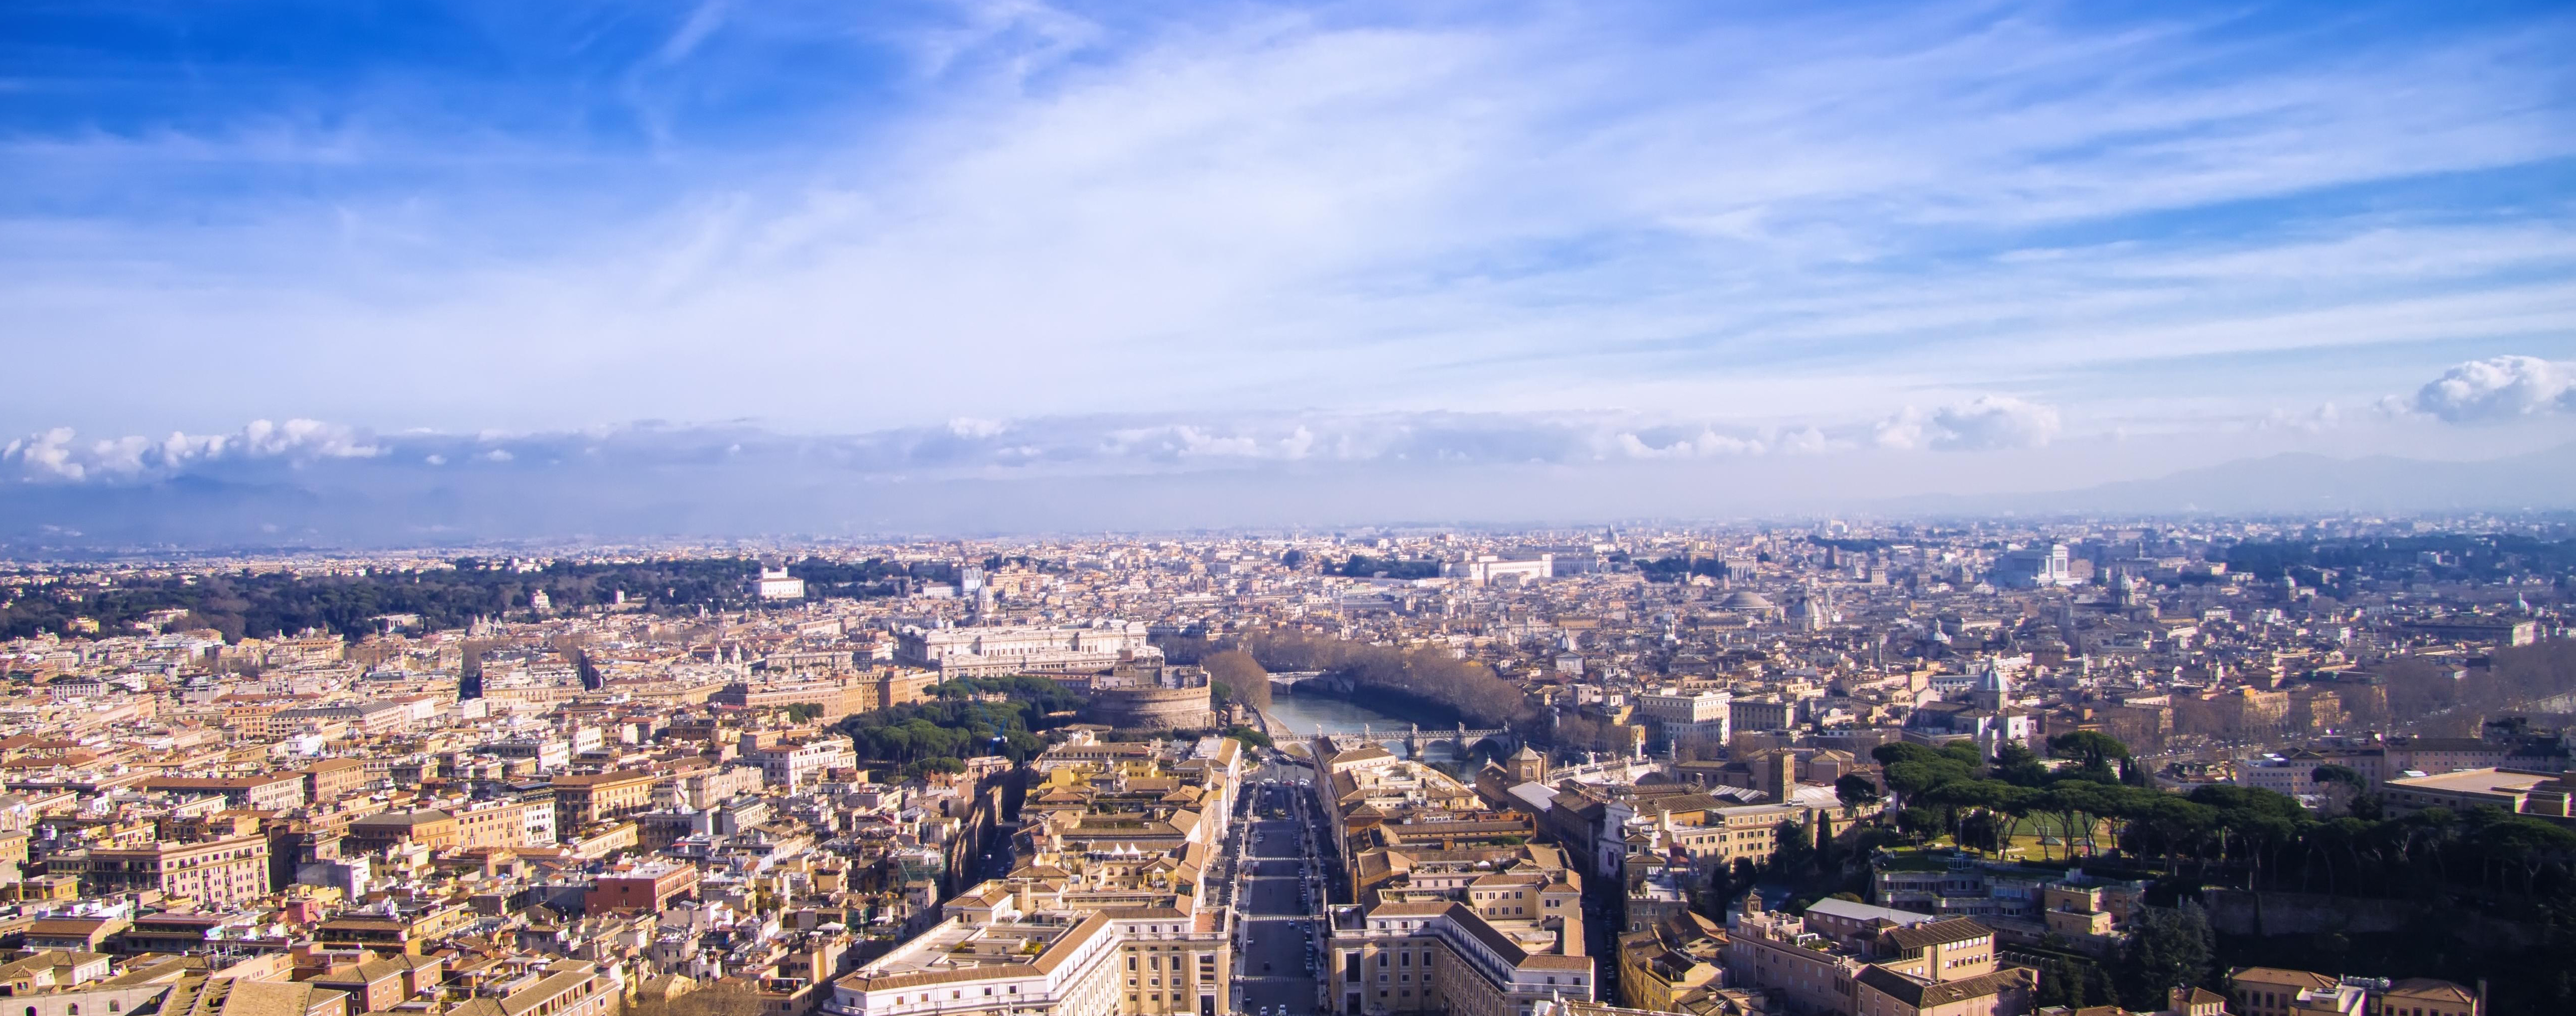 Rome overview